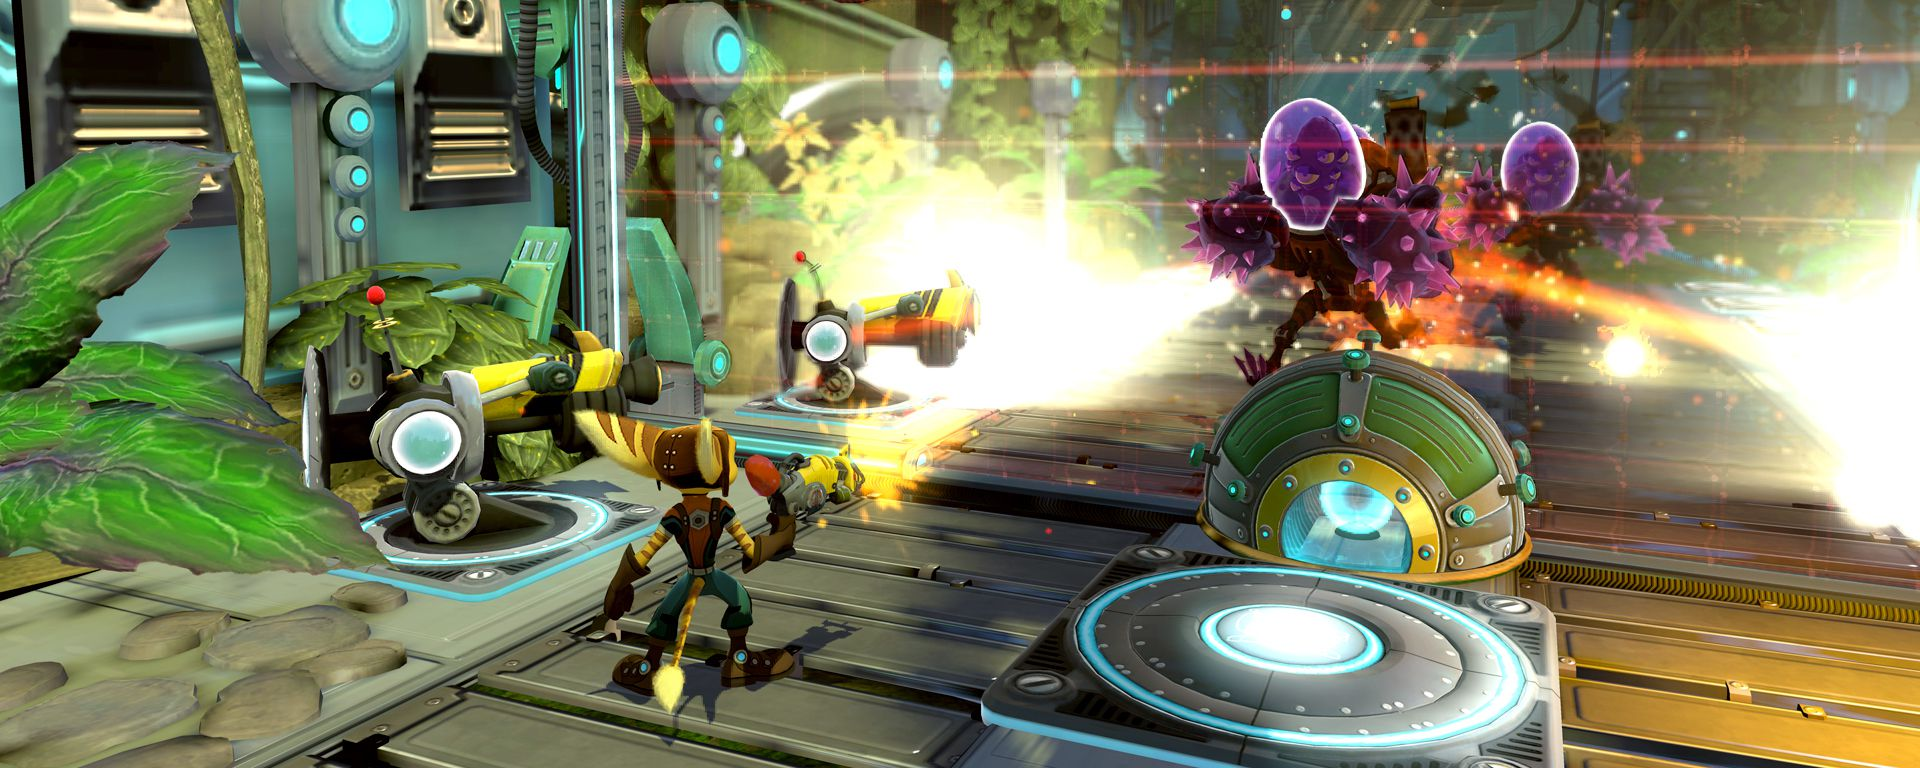 Review Ratchet Clank Full Frontal Assault Slant Magazine